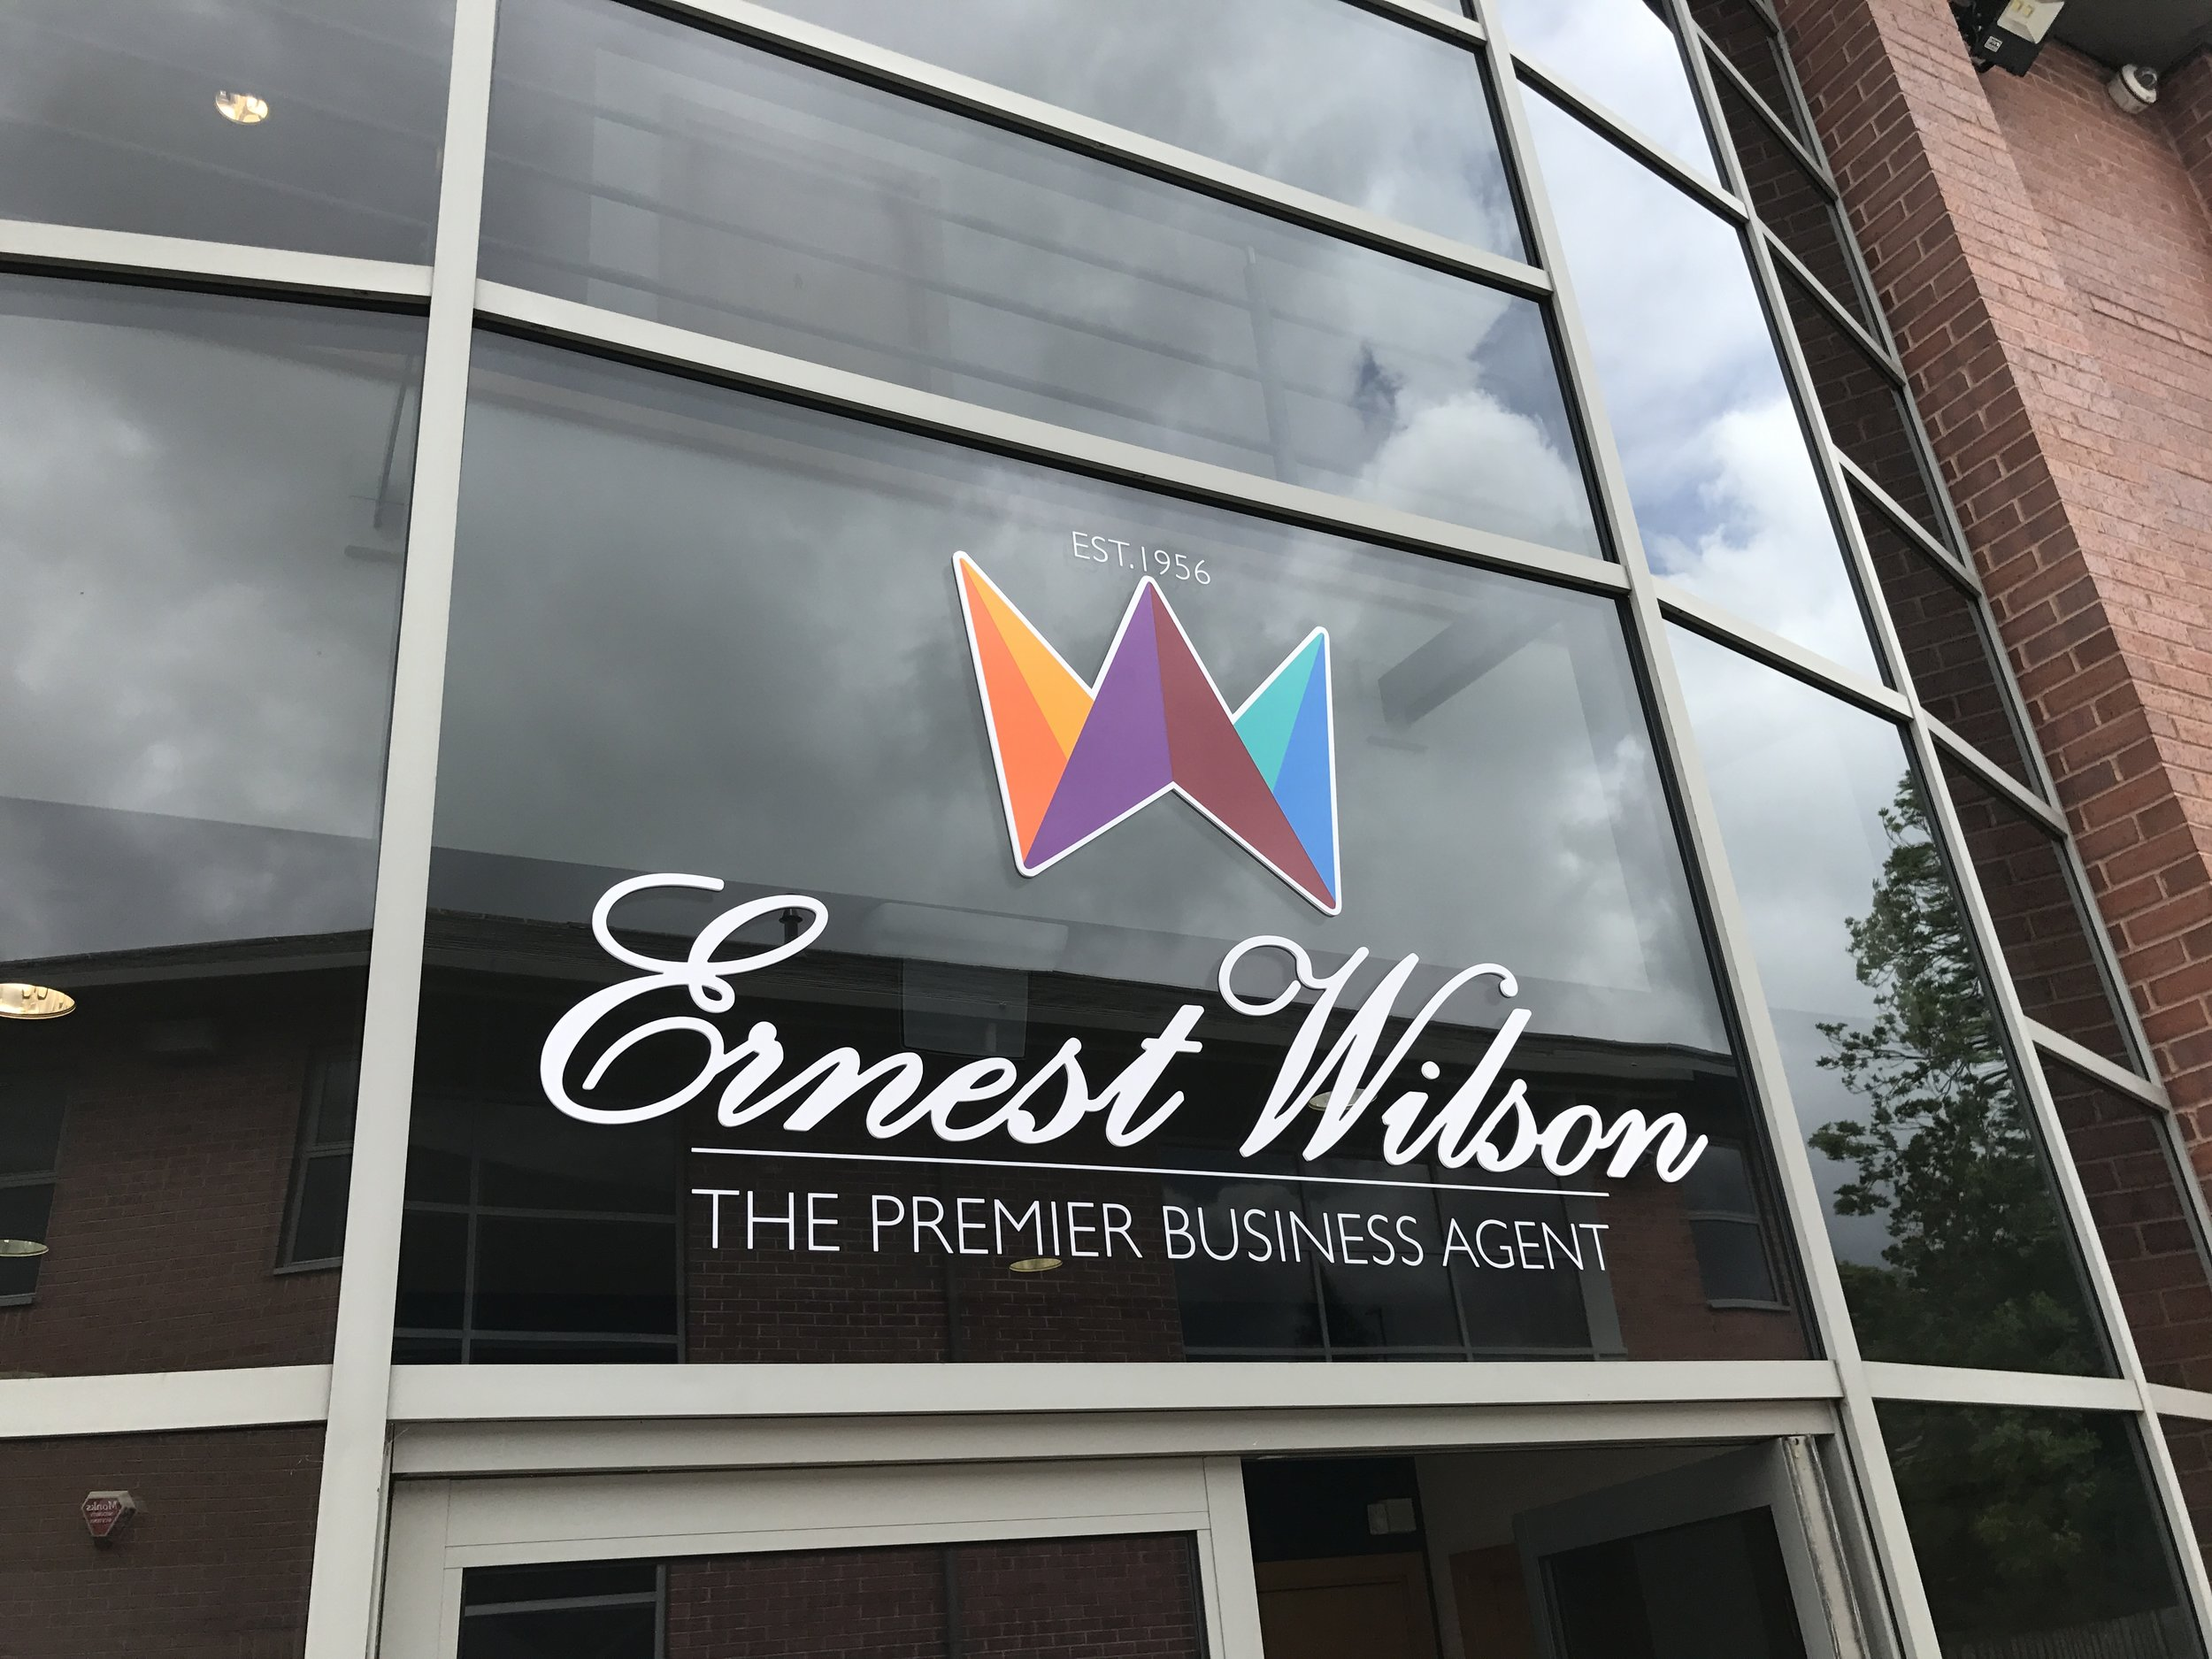 5mm cut Foamex window logo with coloured vinyl